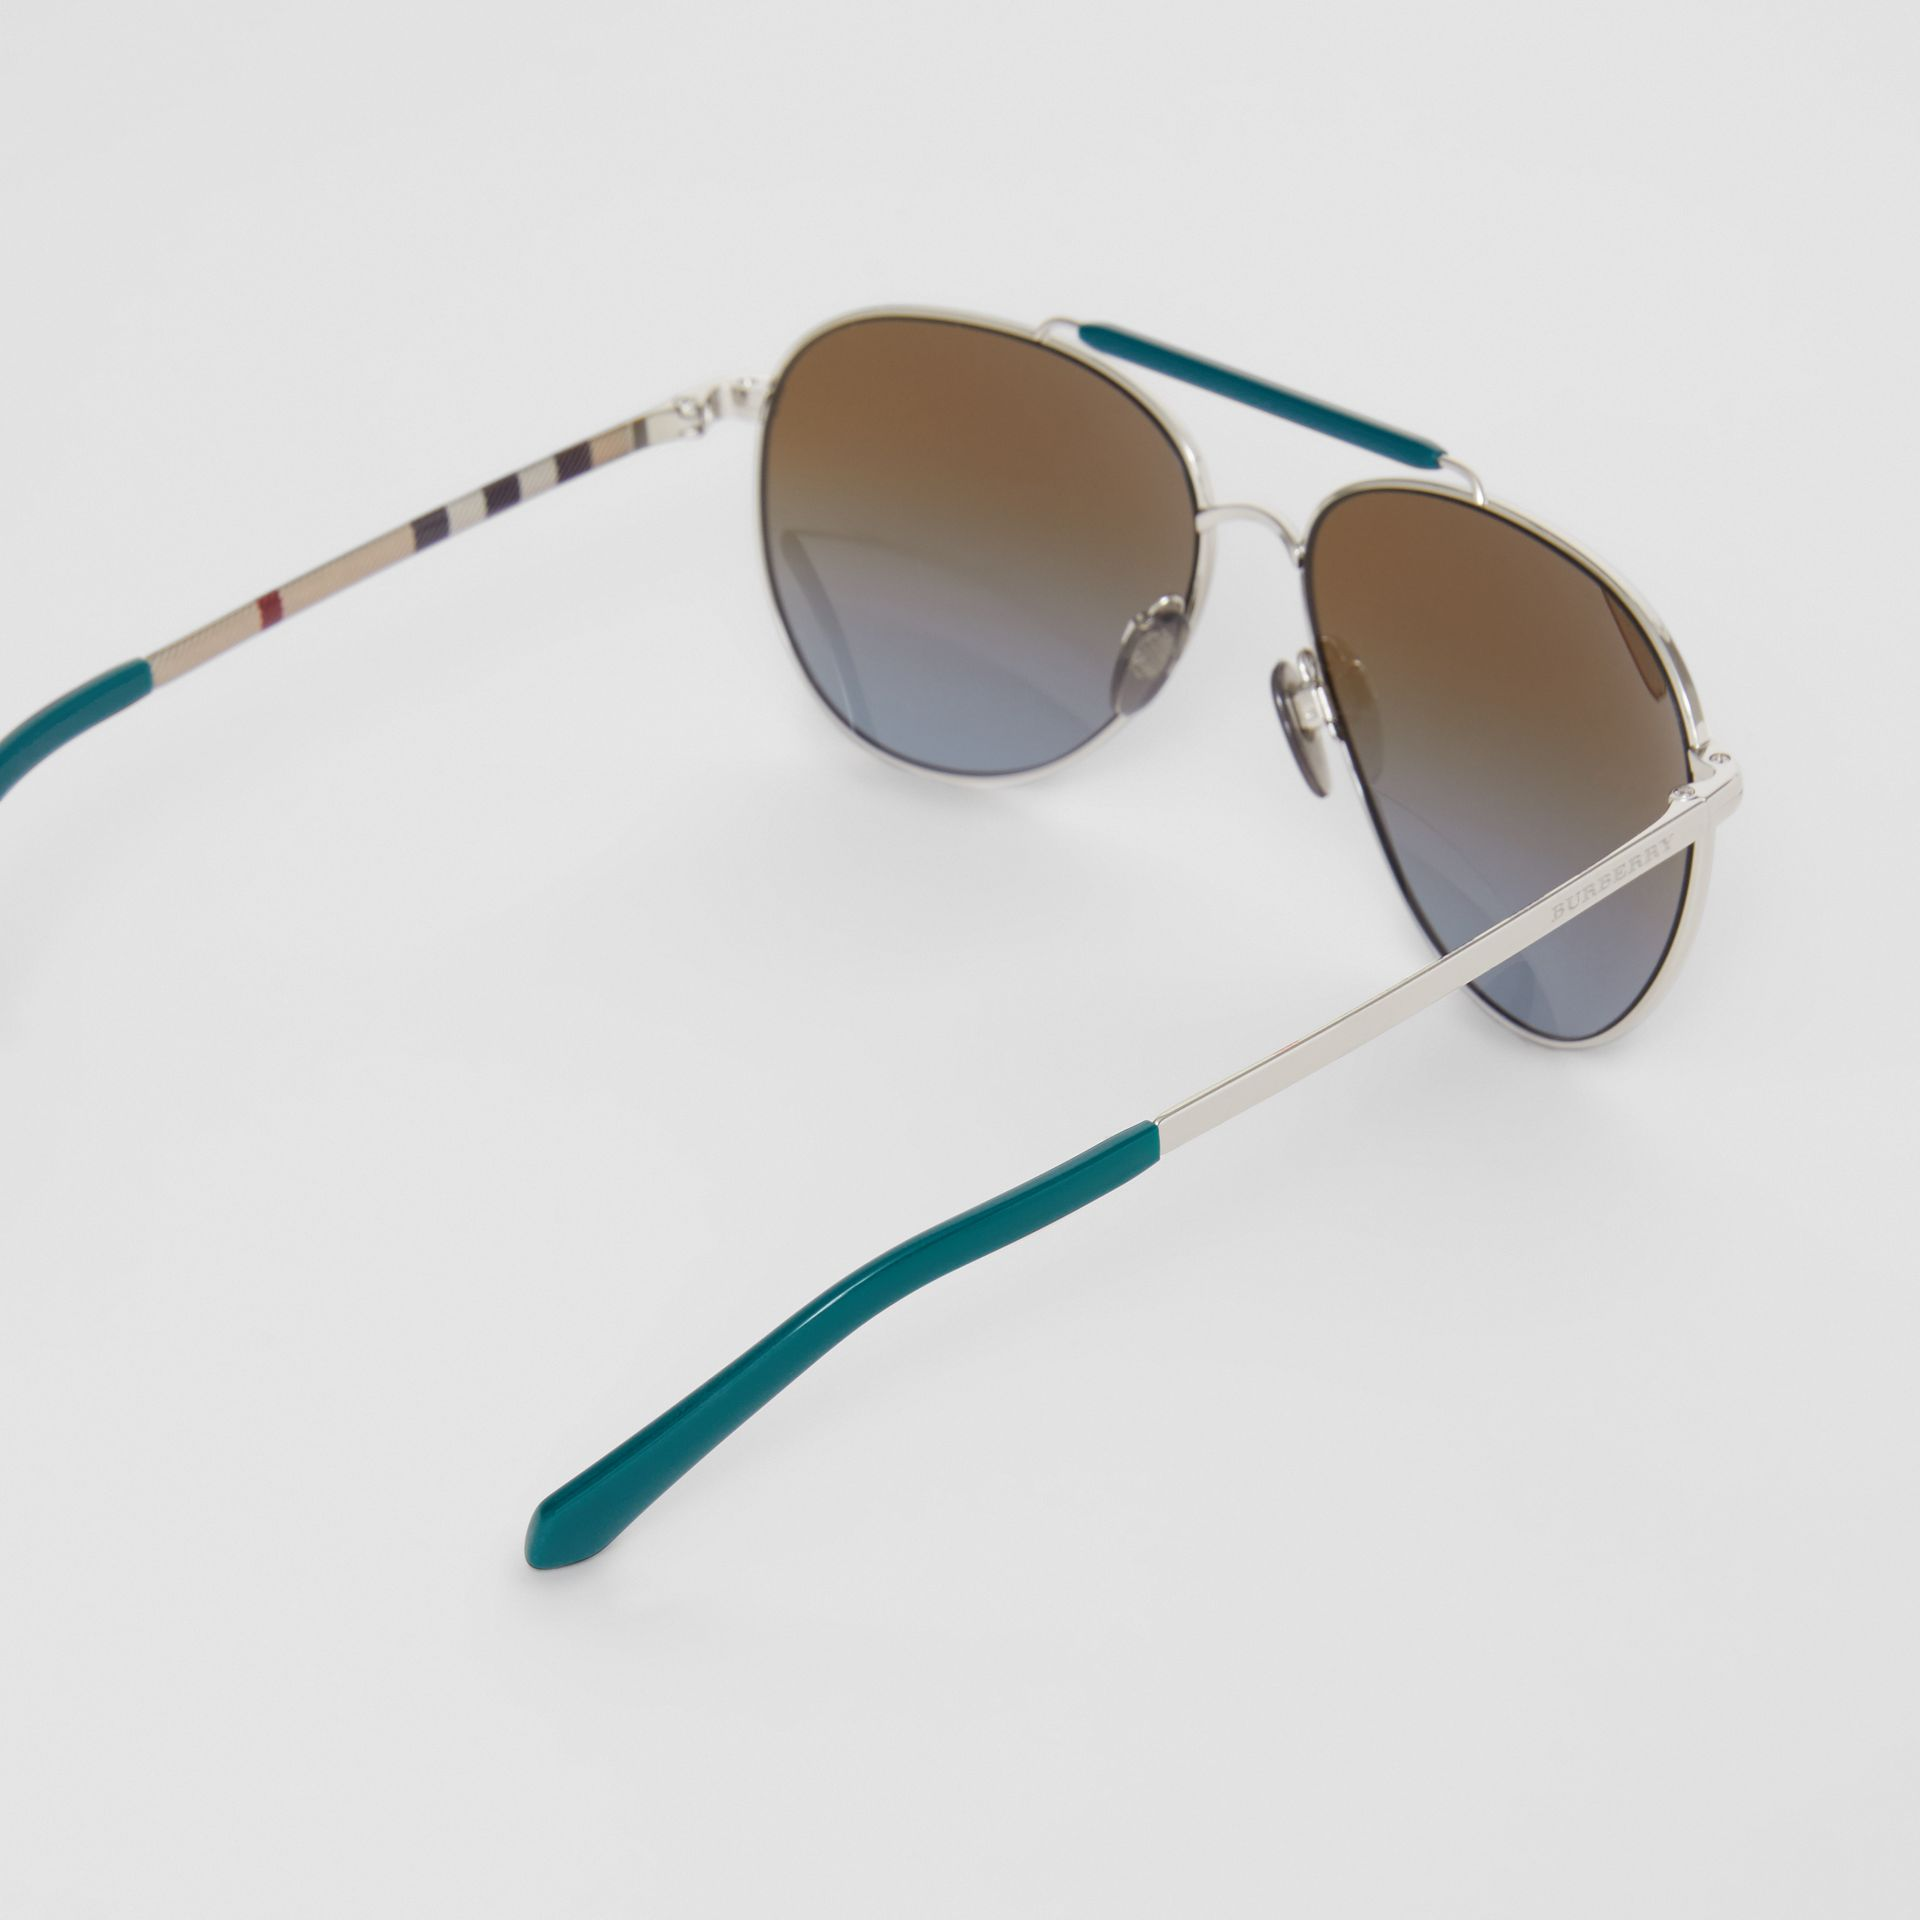 Top Bar Detail Pilot Sunglasses in Teal Blue - Men | Burberry Singapore - gallery image 4